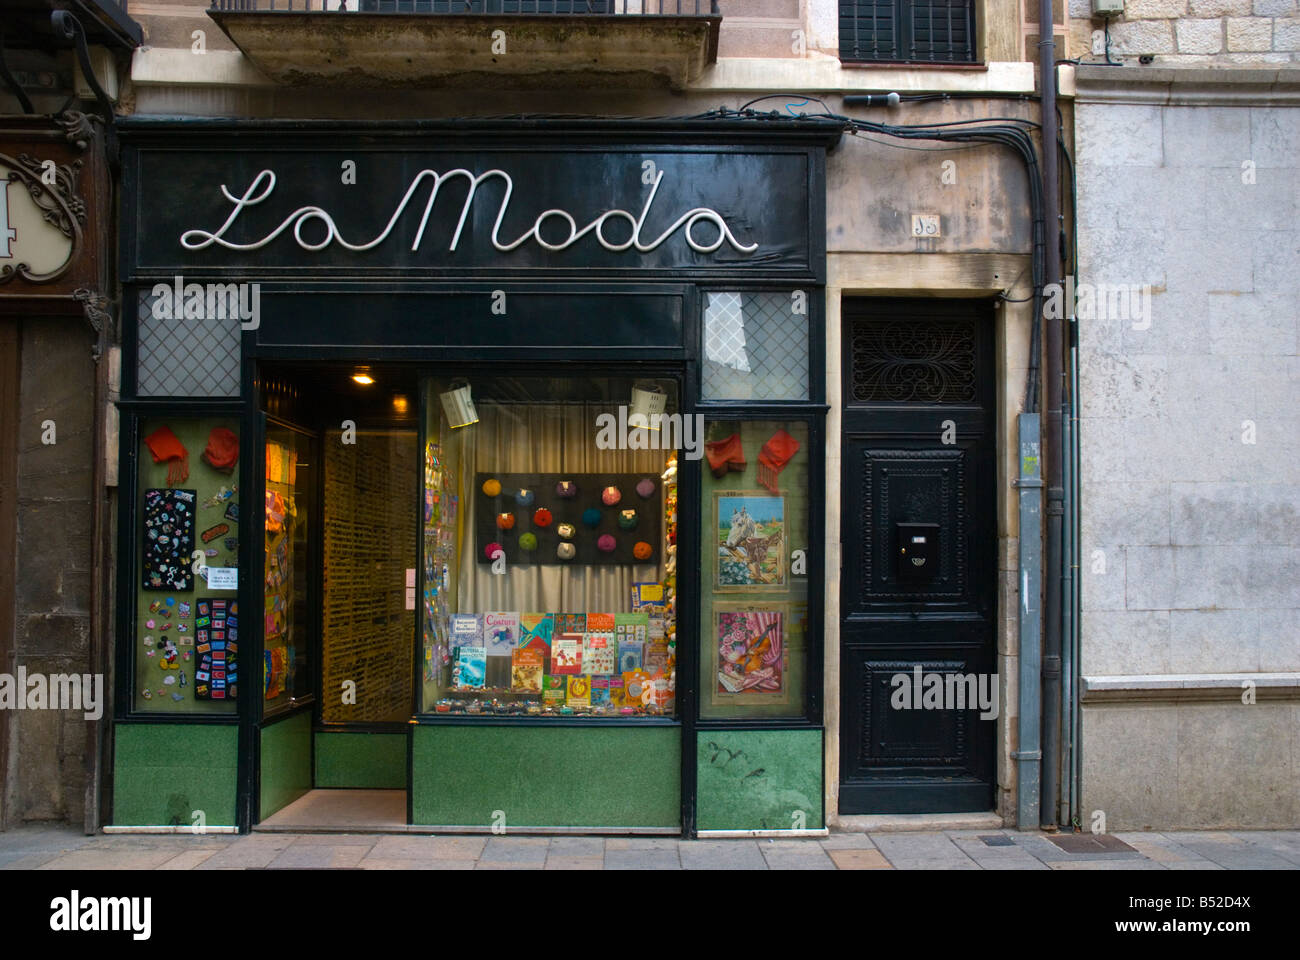 Shop front in Barri Vell the old town Girona Spain Europe - Stock Image